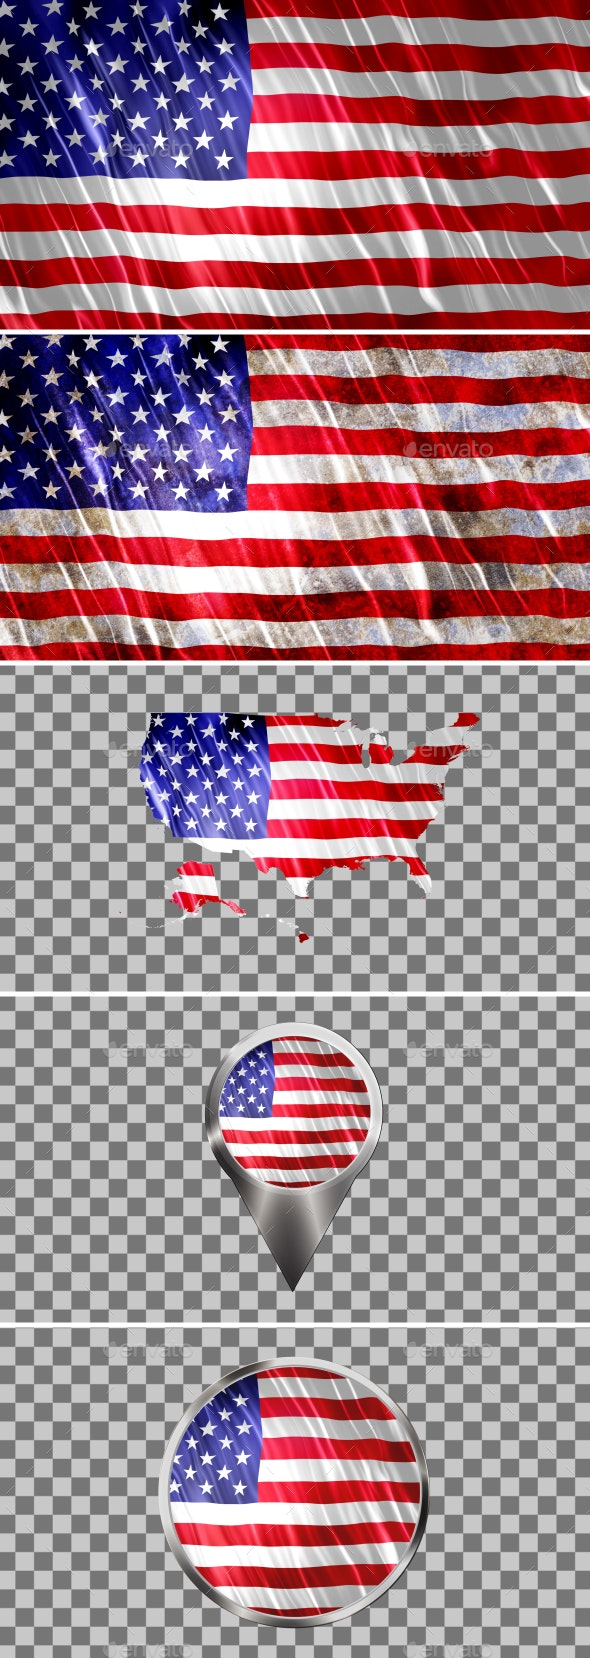 United States of America Flags Icons Map Kit - Backgrounds Graphics